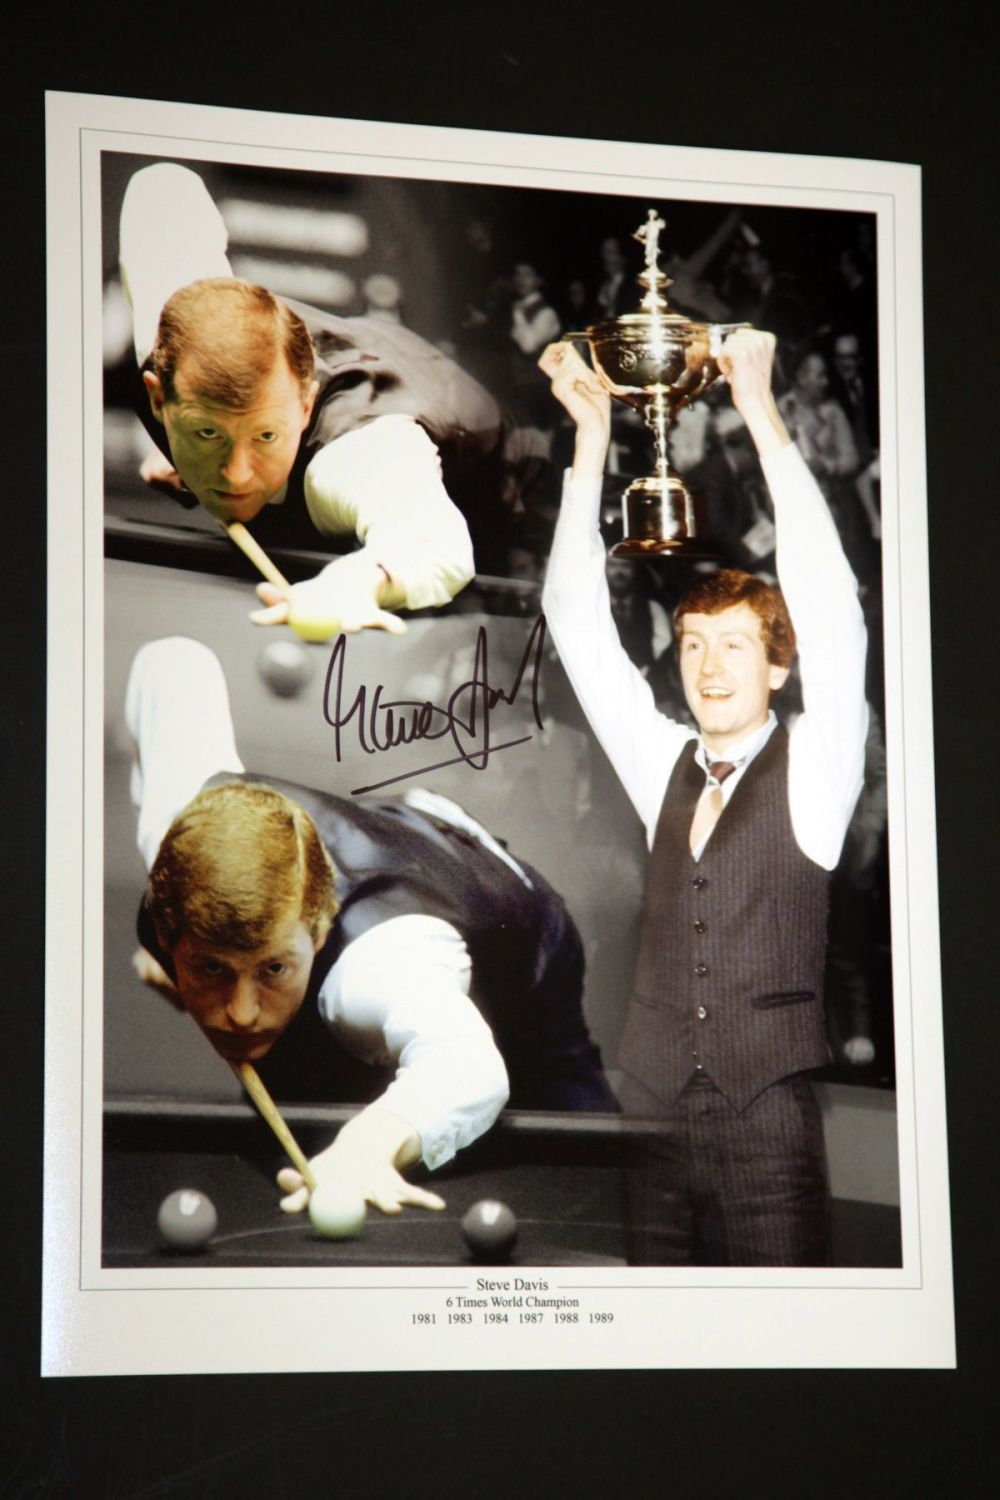 Steve Davis Hand Signed Boxing 12x16 Photograph